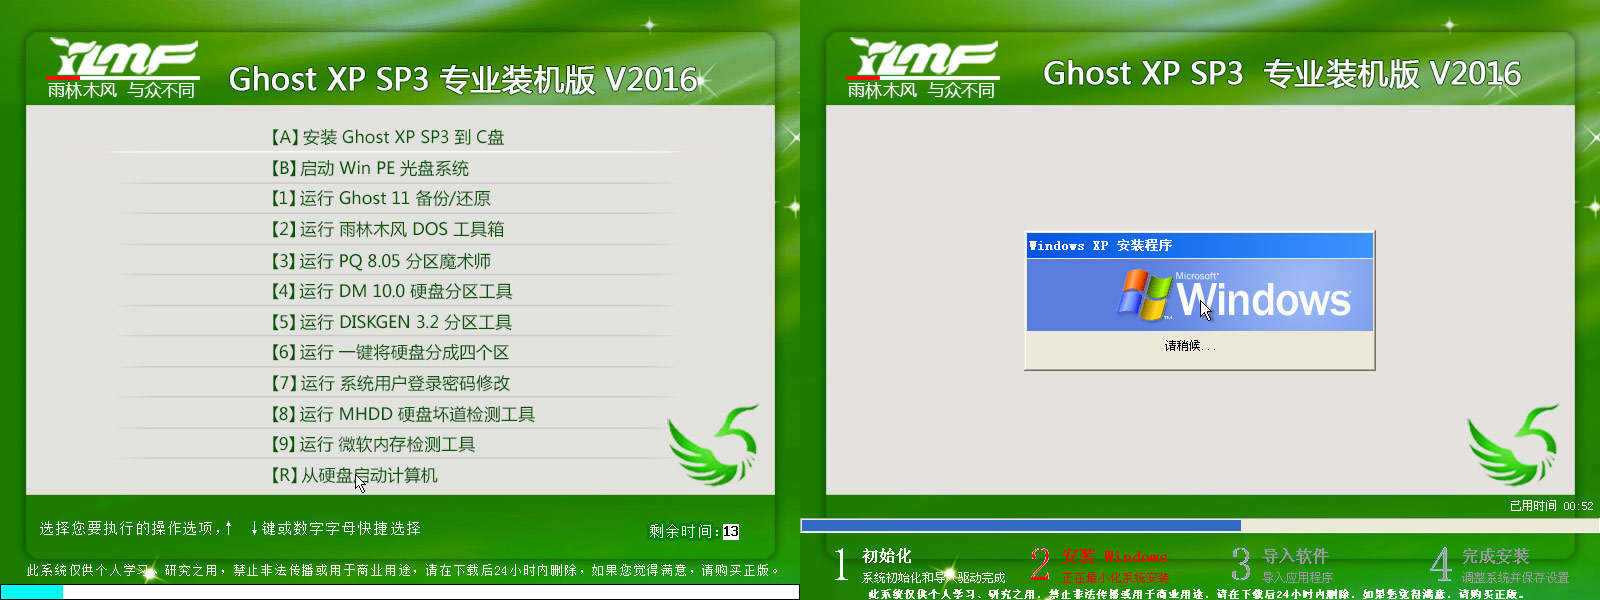 ����ľ�� Ghost XP SP3 רҵװ��